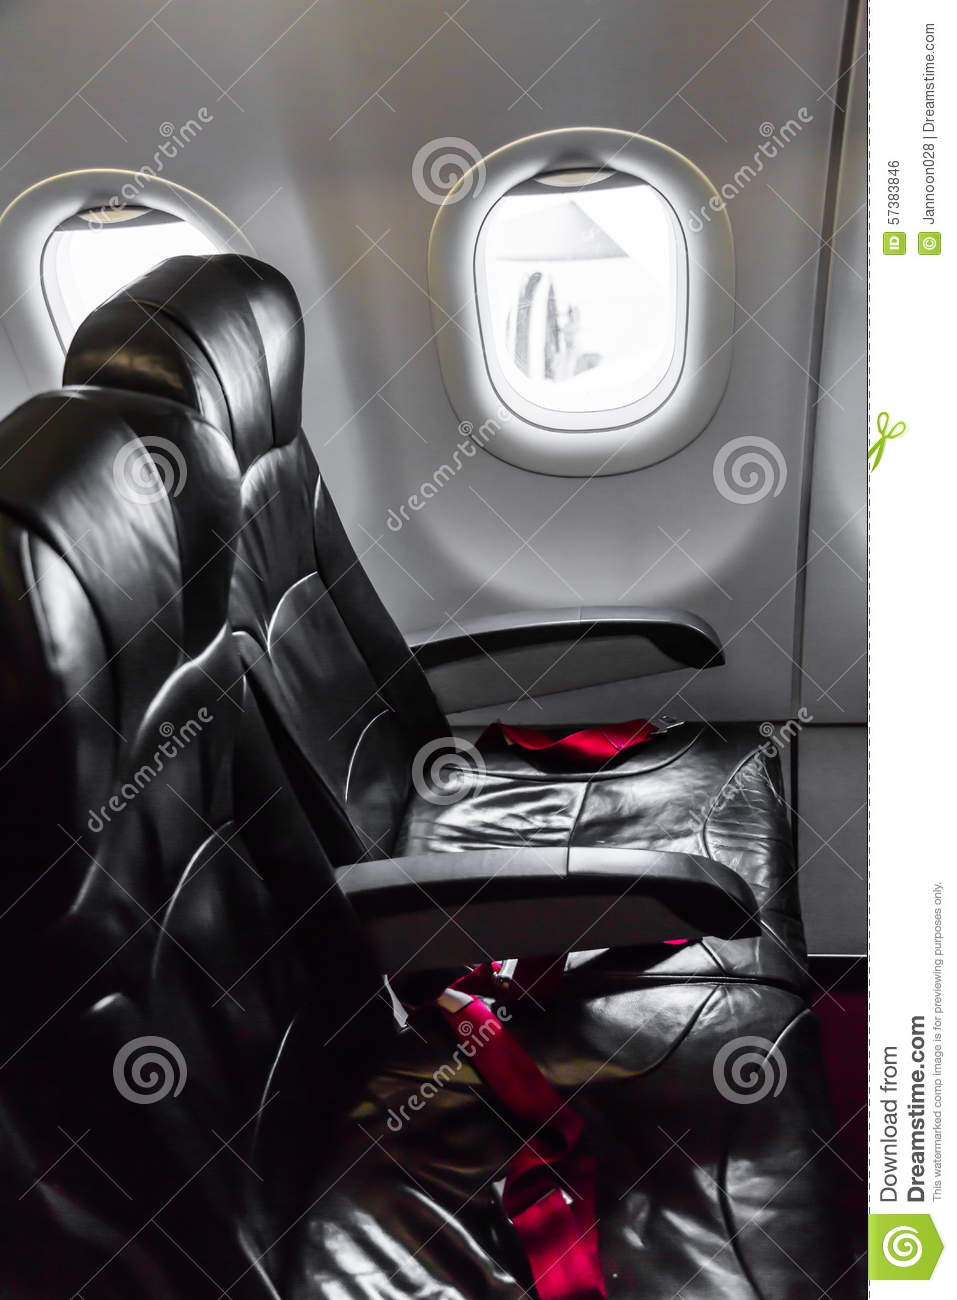 Aircraft Seats: Airplane Seats In The Cabin Stock Photo